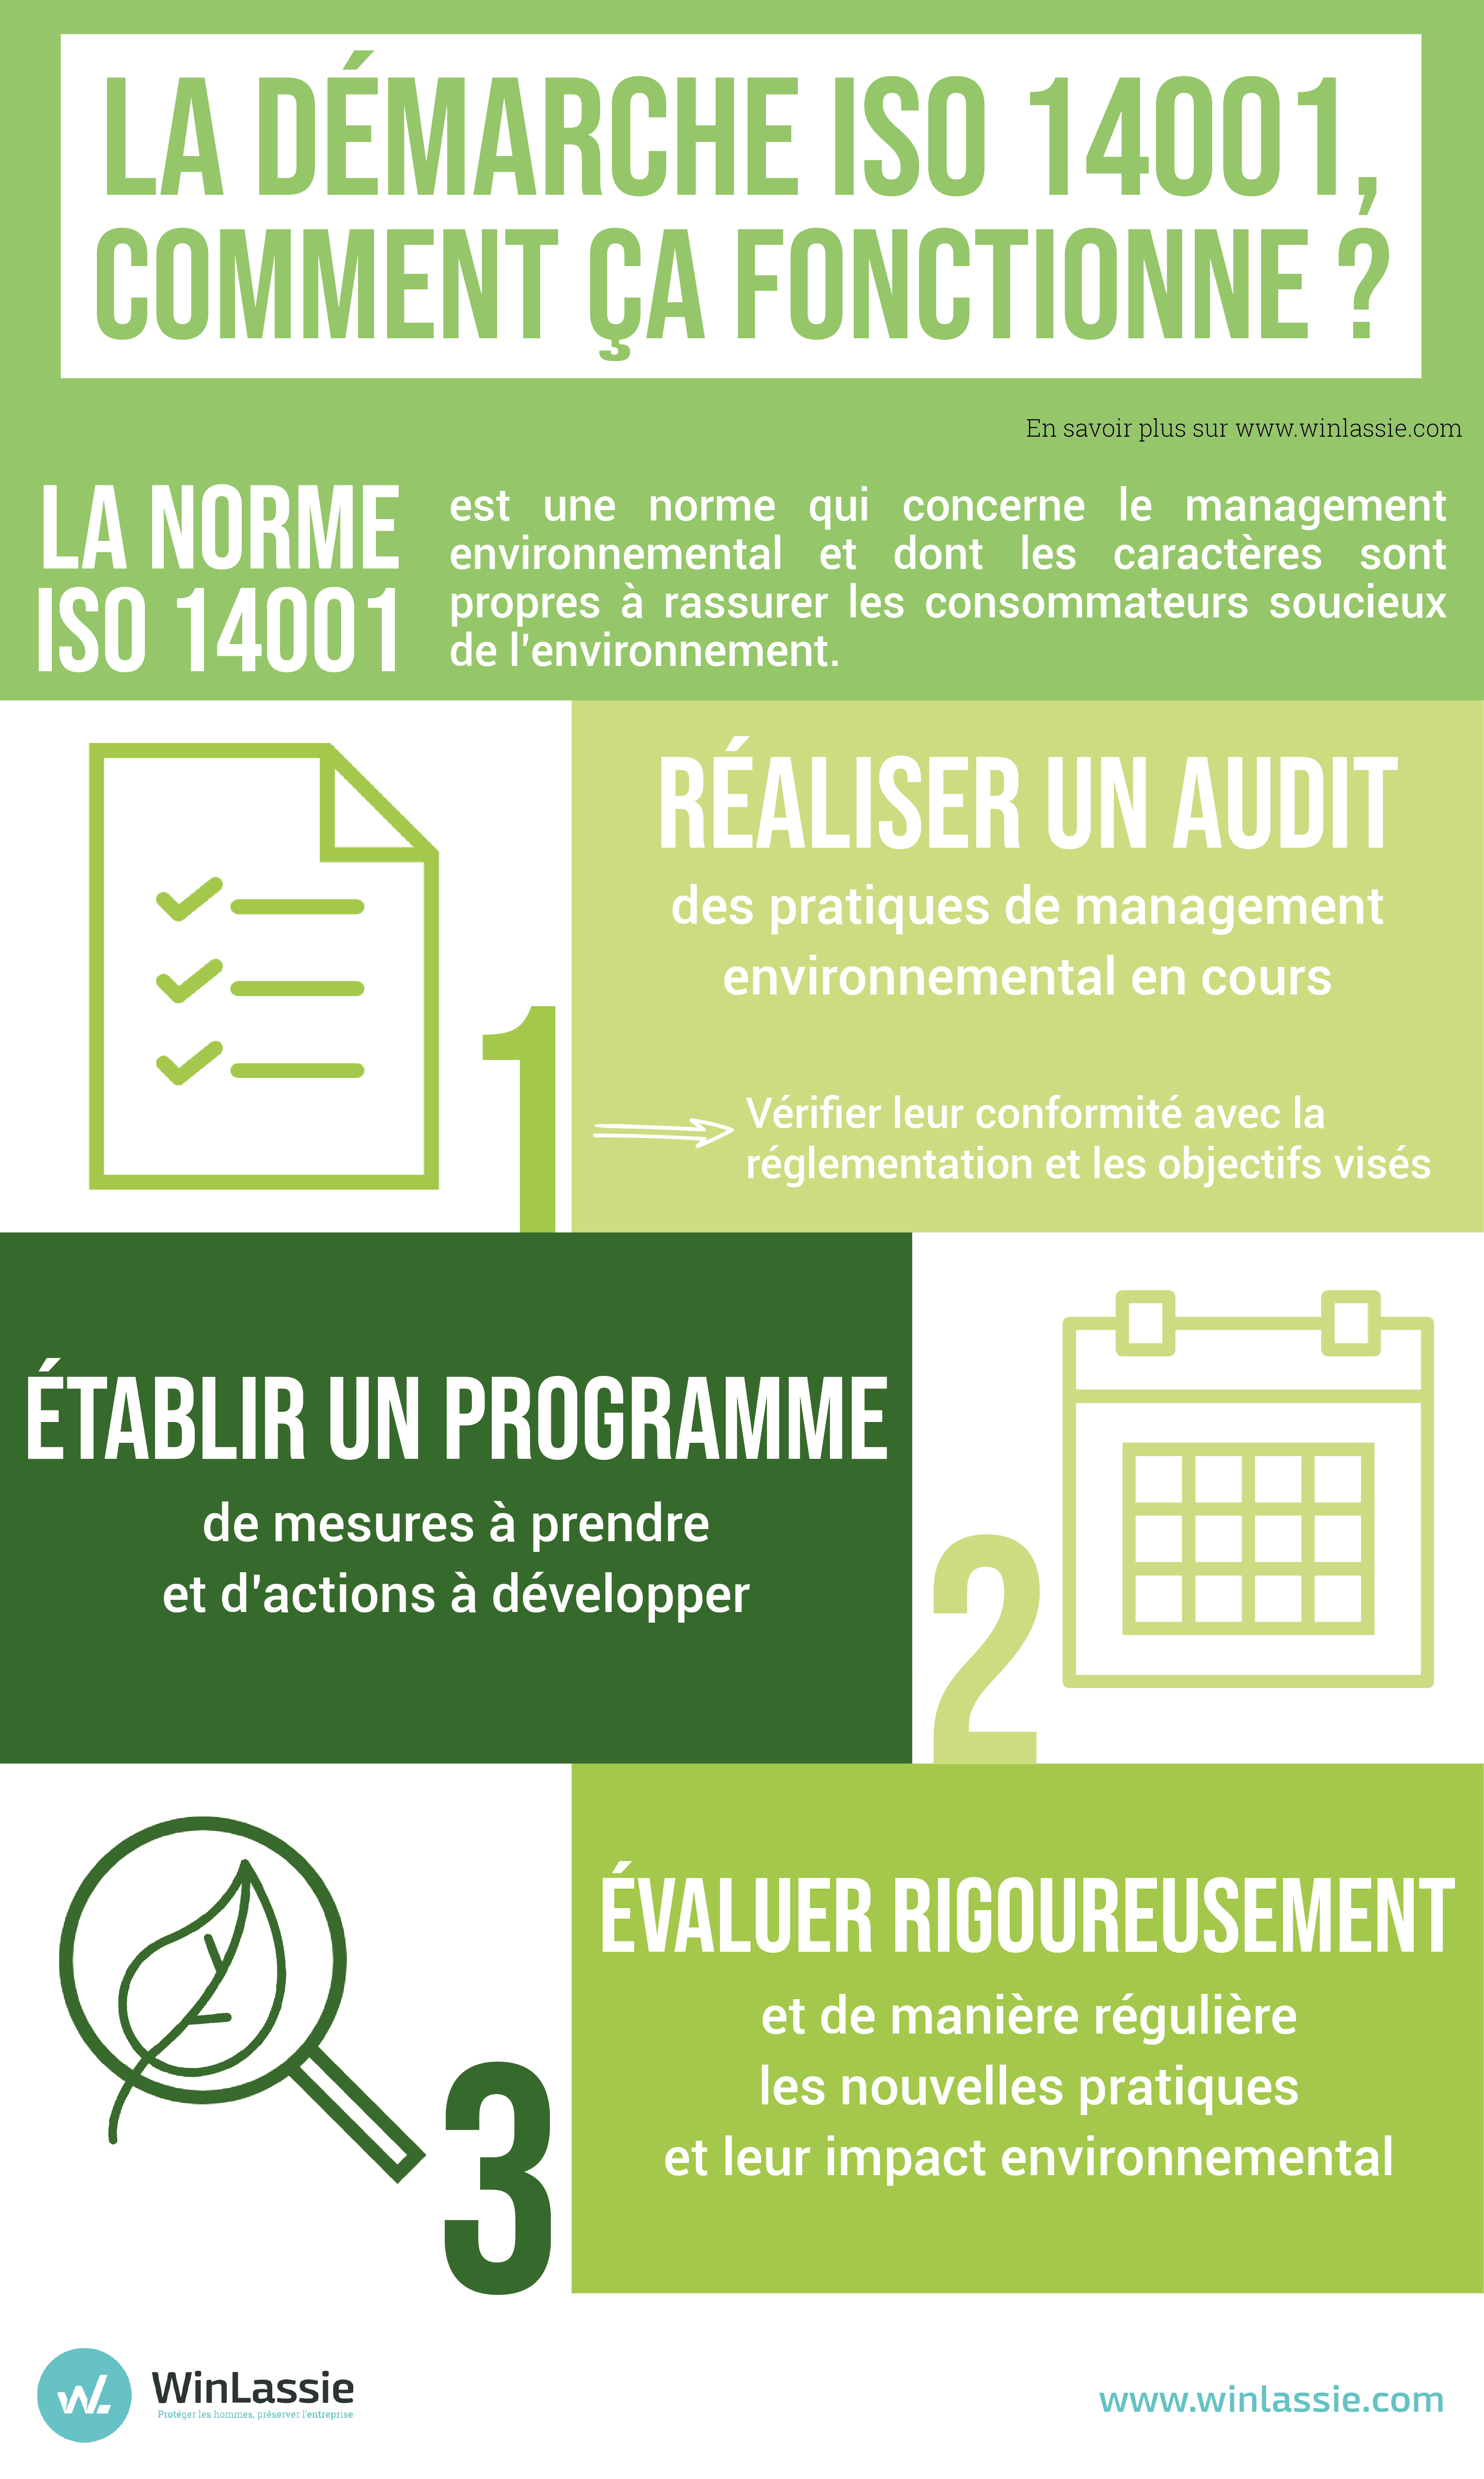 Infographie analyse environnementale norme ISO 14001